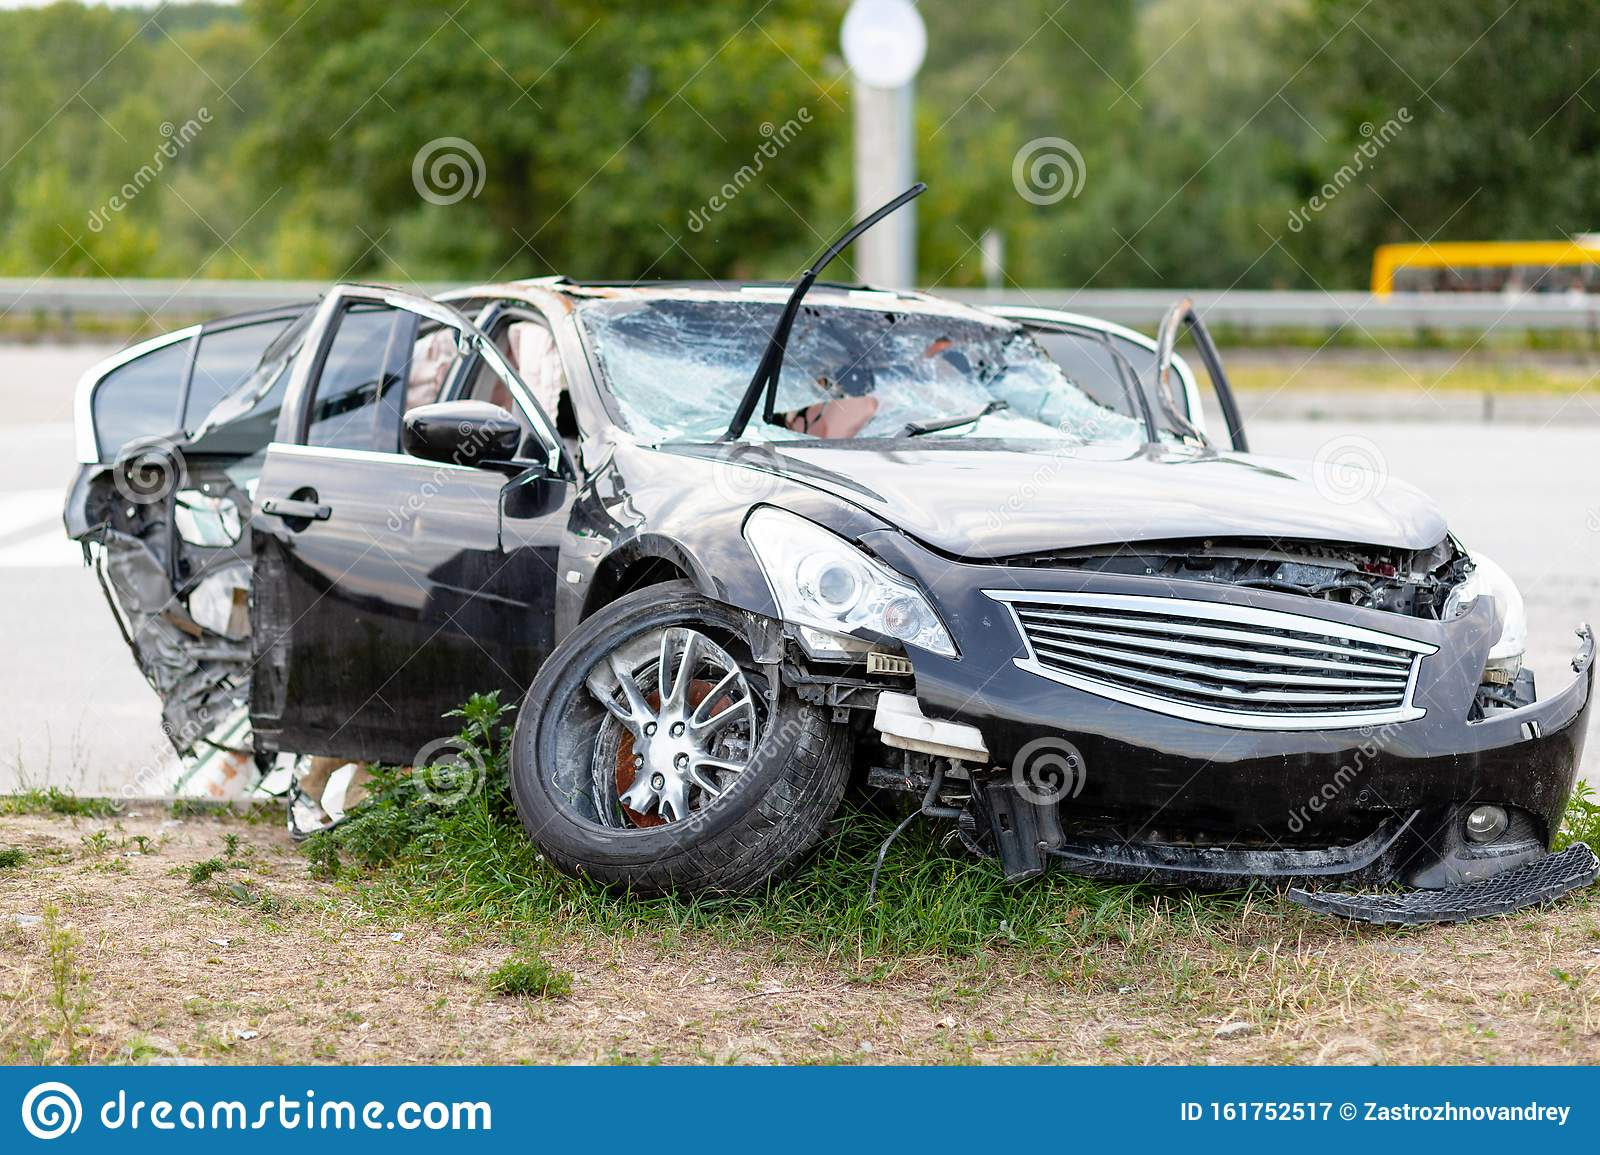 Wrecked Car On Side Of Highway Safety On Road Accident Or Crash Stock Image Image Of Deformation Detail 161752517